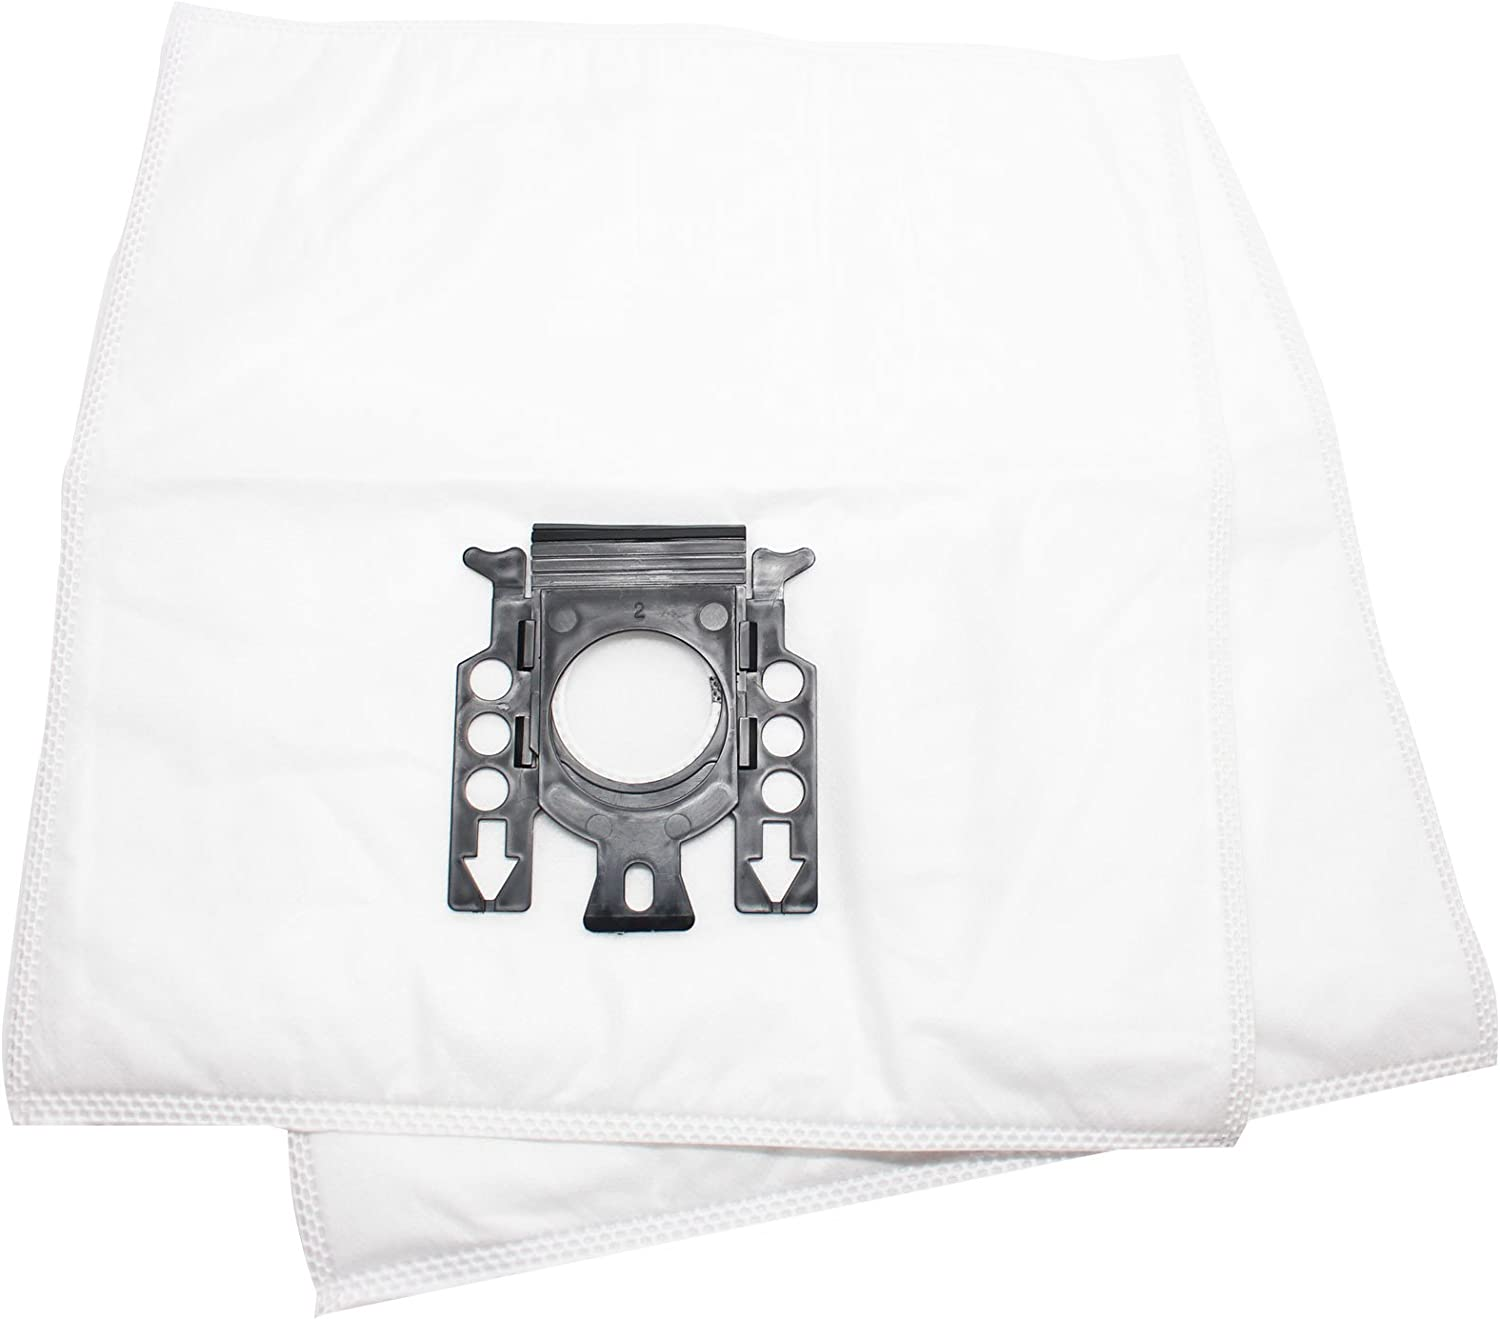 6-Pack, 2 Bags Per Pack 12 Replacement Miele S5380 Vacuum Bags with 12 Micro Filters Compatible Miele Type GN Vacuum Bags